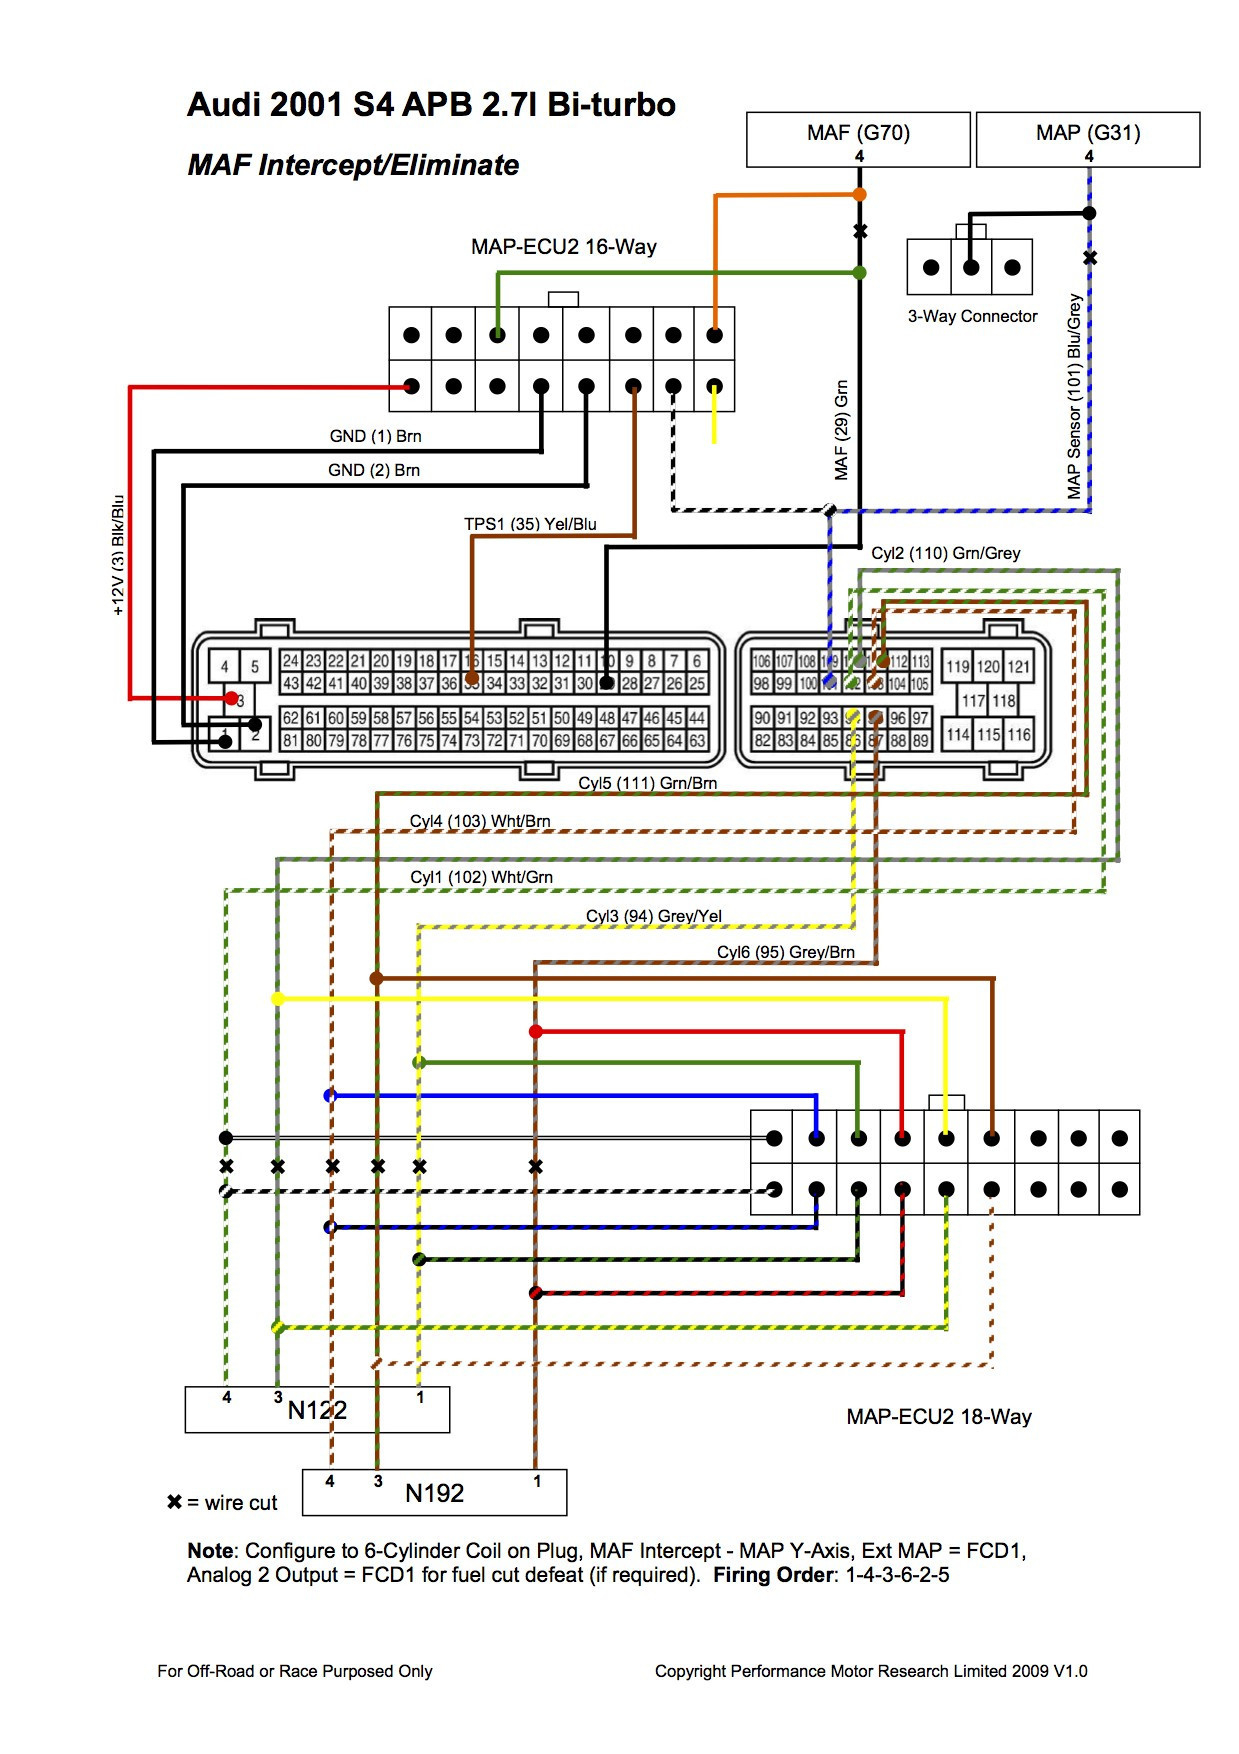 98 Honda Accord Stereo Wiring Diagram from wholefoodsonabudget.com